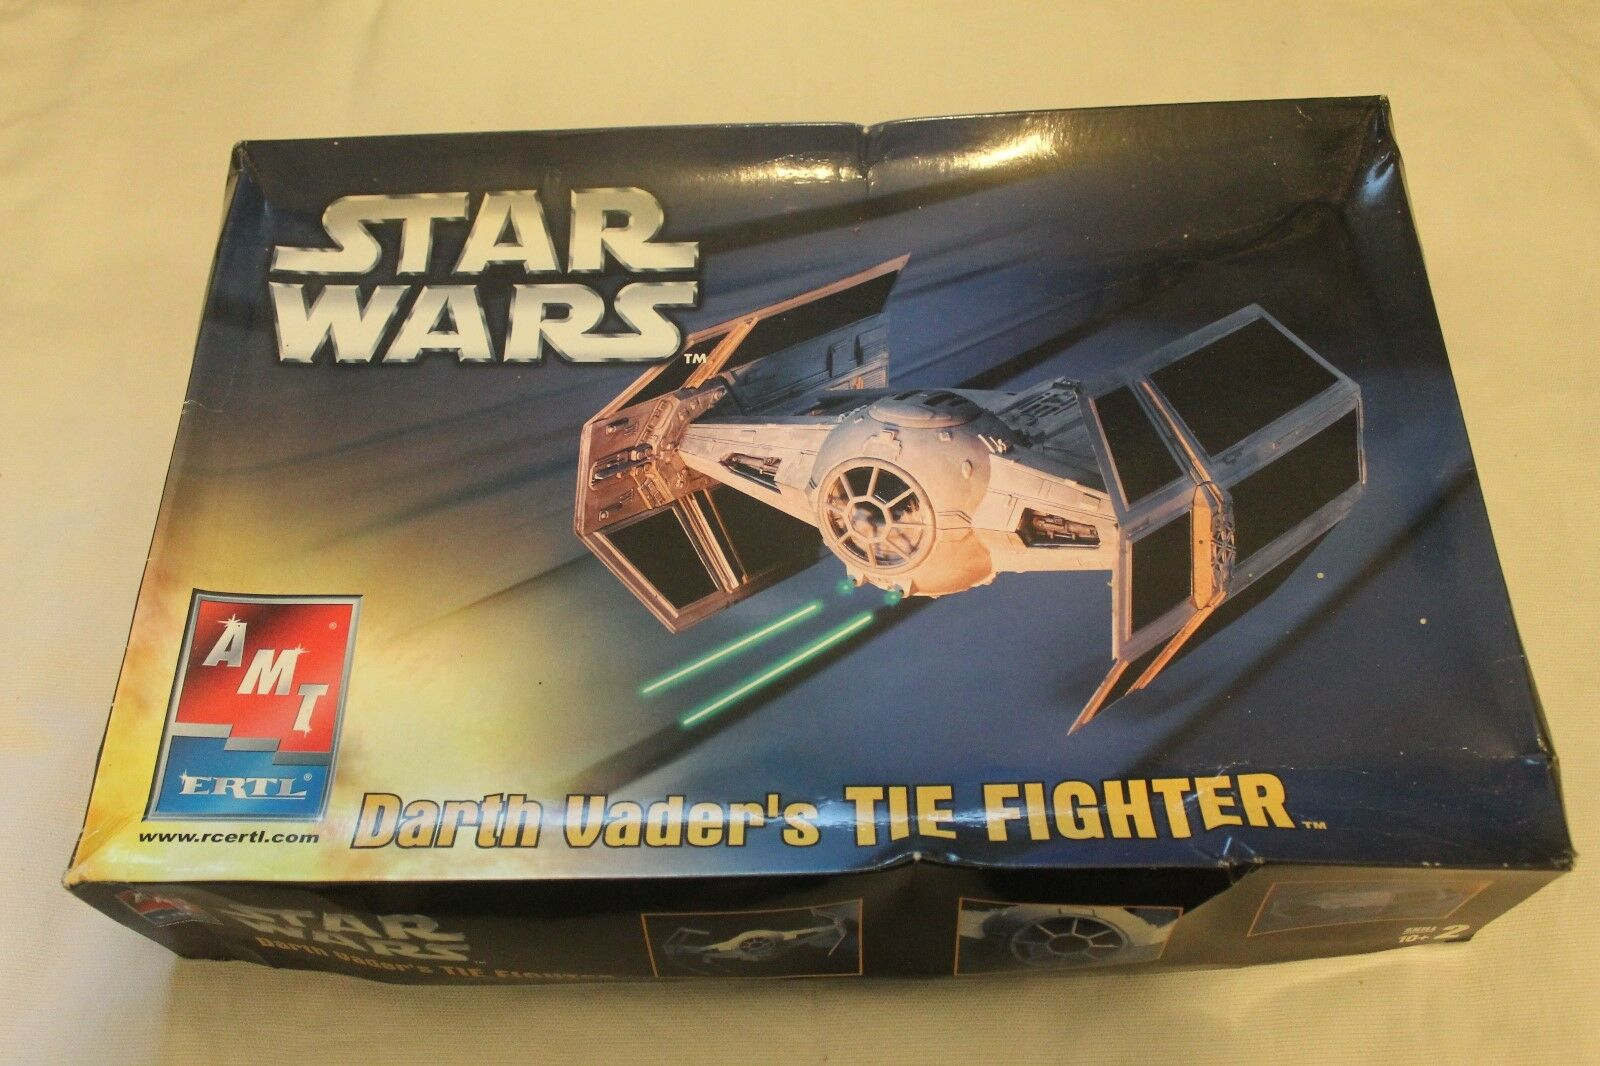 AMT ERTL - DARTH VADERS TIE FIGHTER